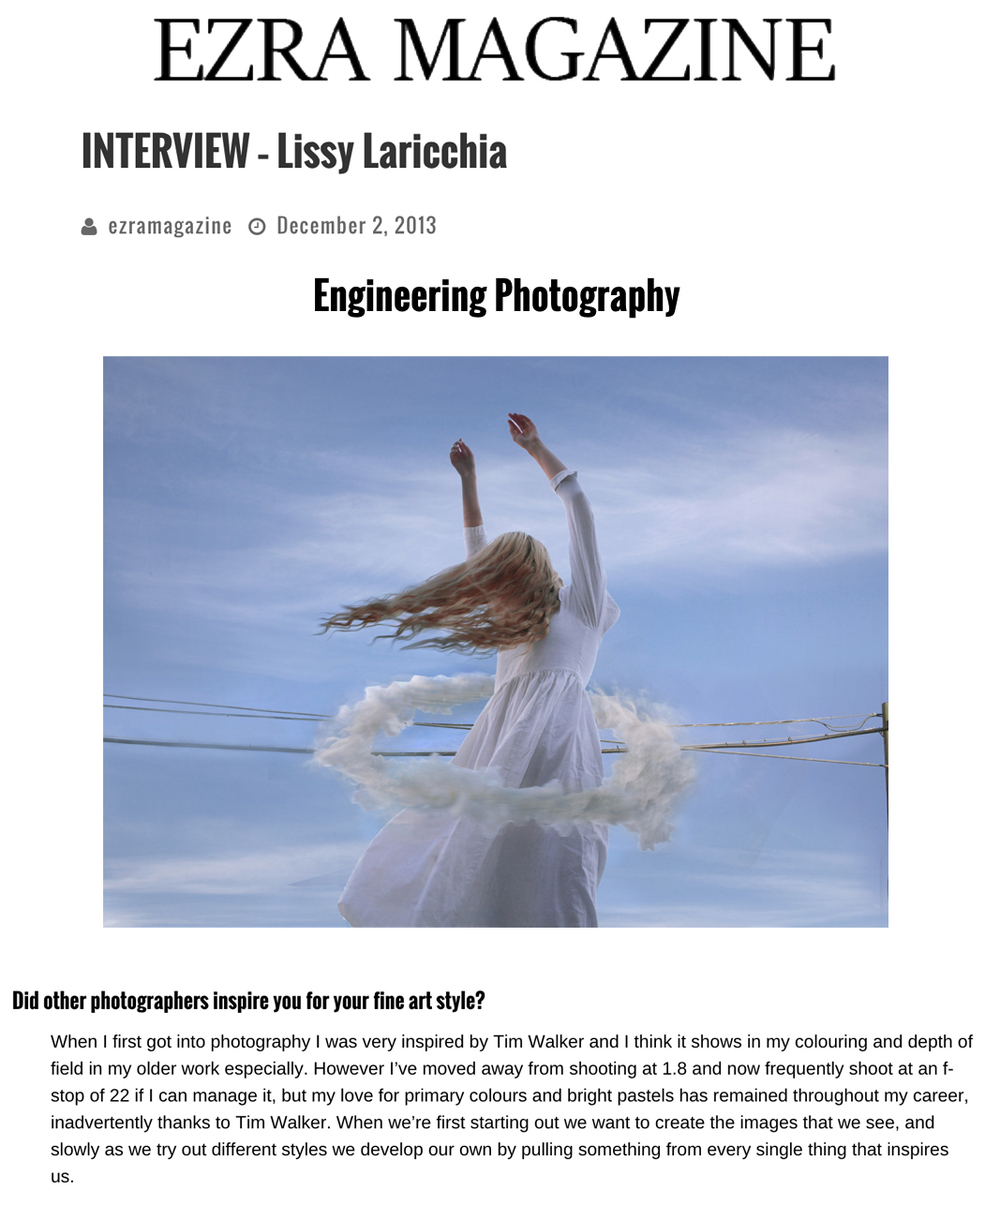 "<a href=""http://ezramagazine.com/2013/12/02/interview-lissy-laricchia/"">Click here to read full interview</a>"